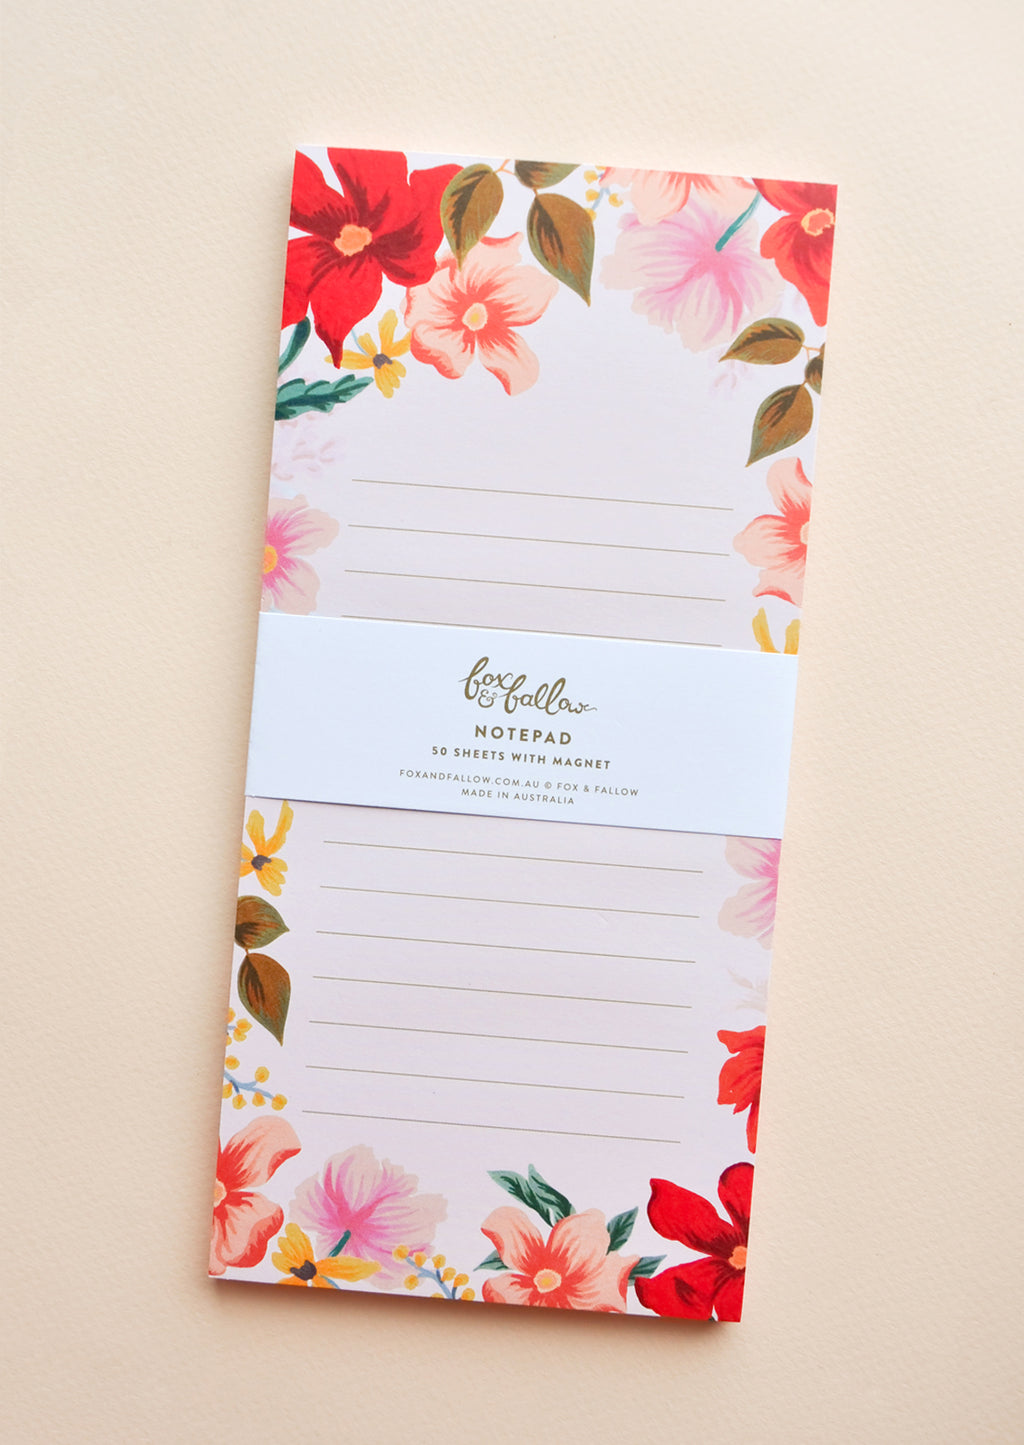 Medium / Blush: Medium notepad with lined pink paper and floral decoration.